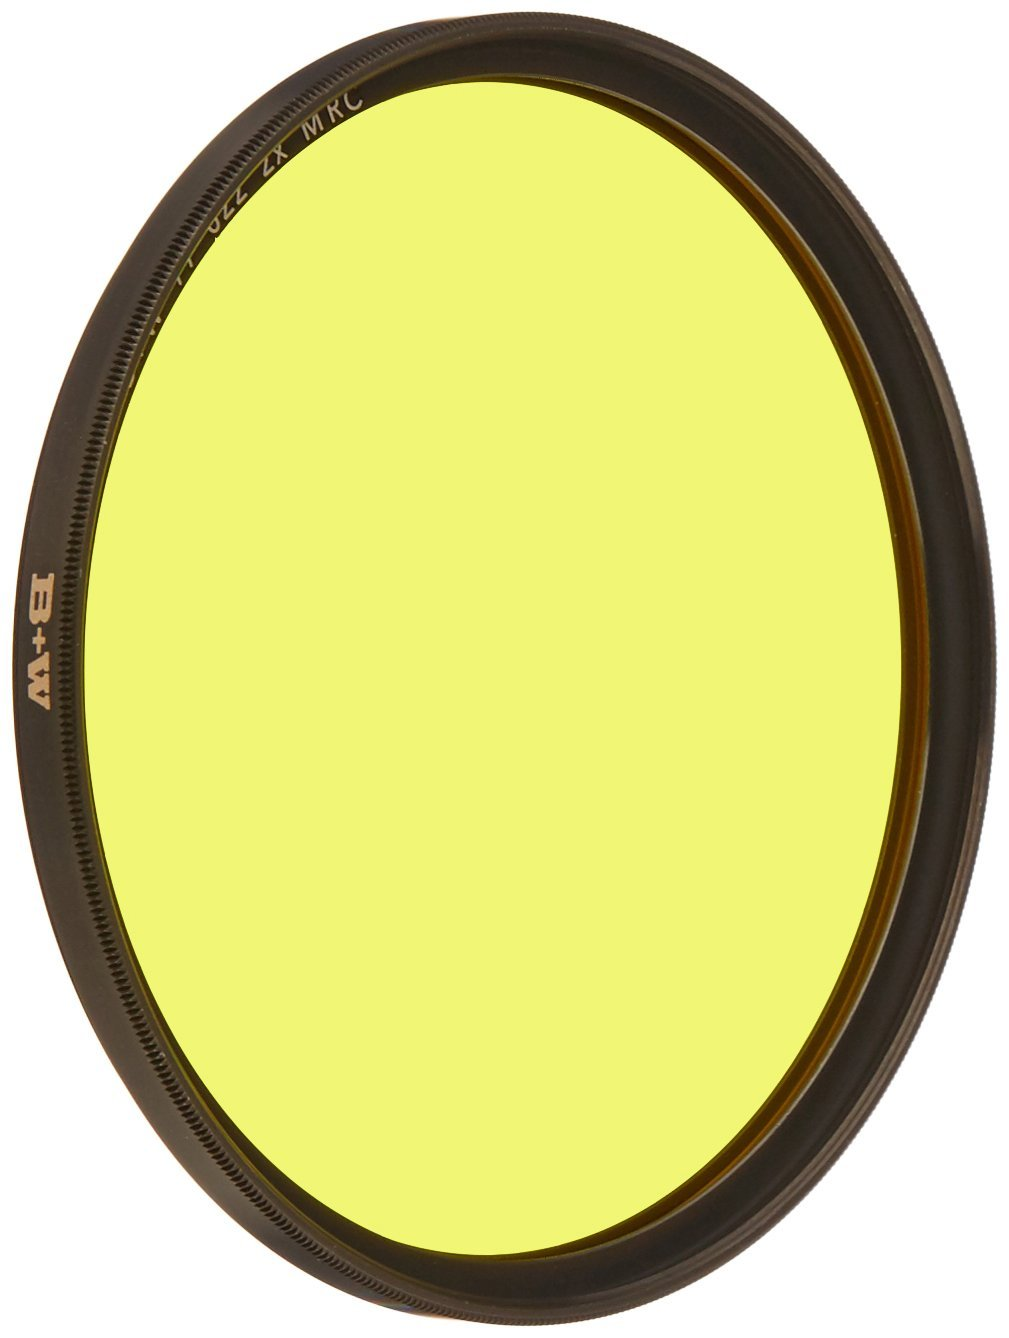 B+W 77mm Yellow Camera Lens Contrast Filter with Multi Resistant Coating (022M)